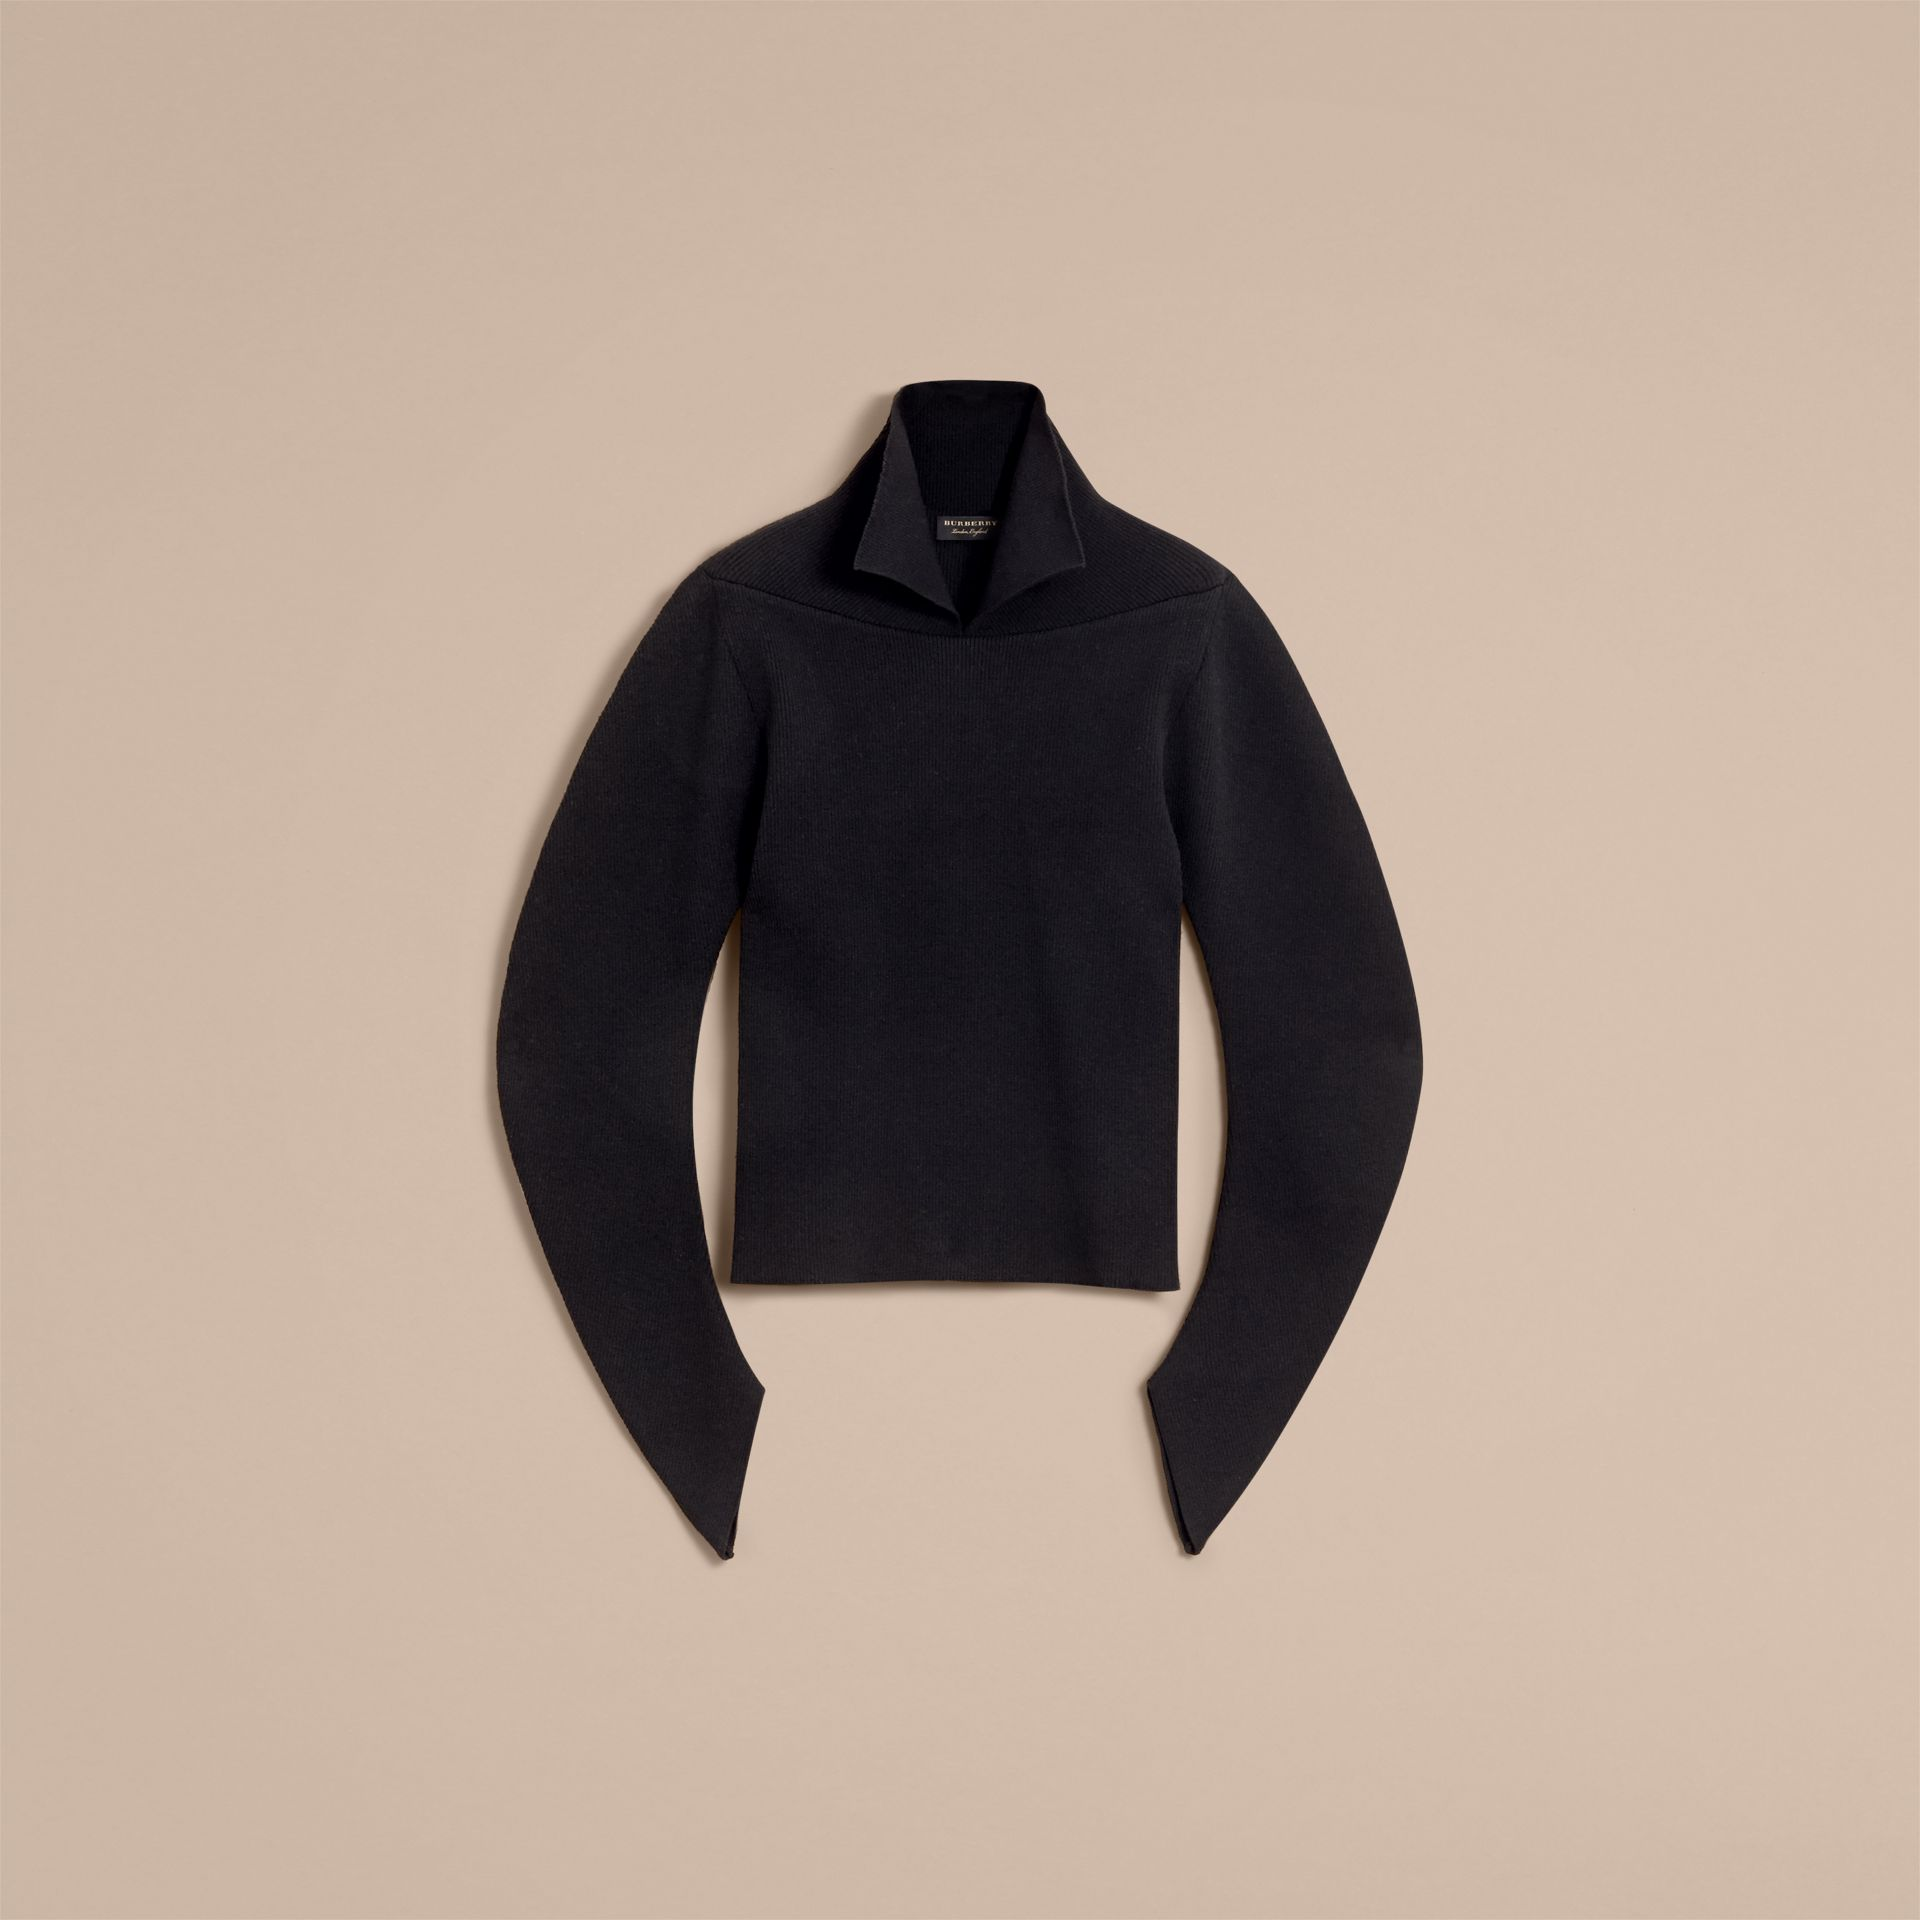 Rib Knit Compact Wool Blend Sculptural Sweater in Black - Men | Burberry - gallery image 4